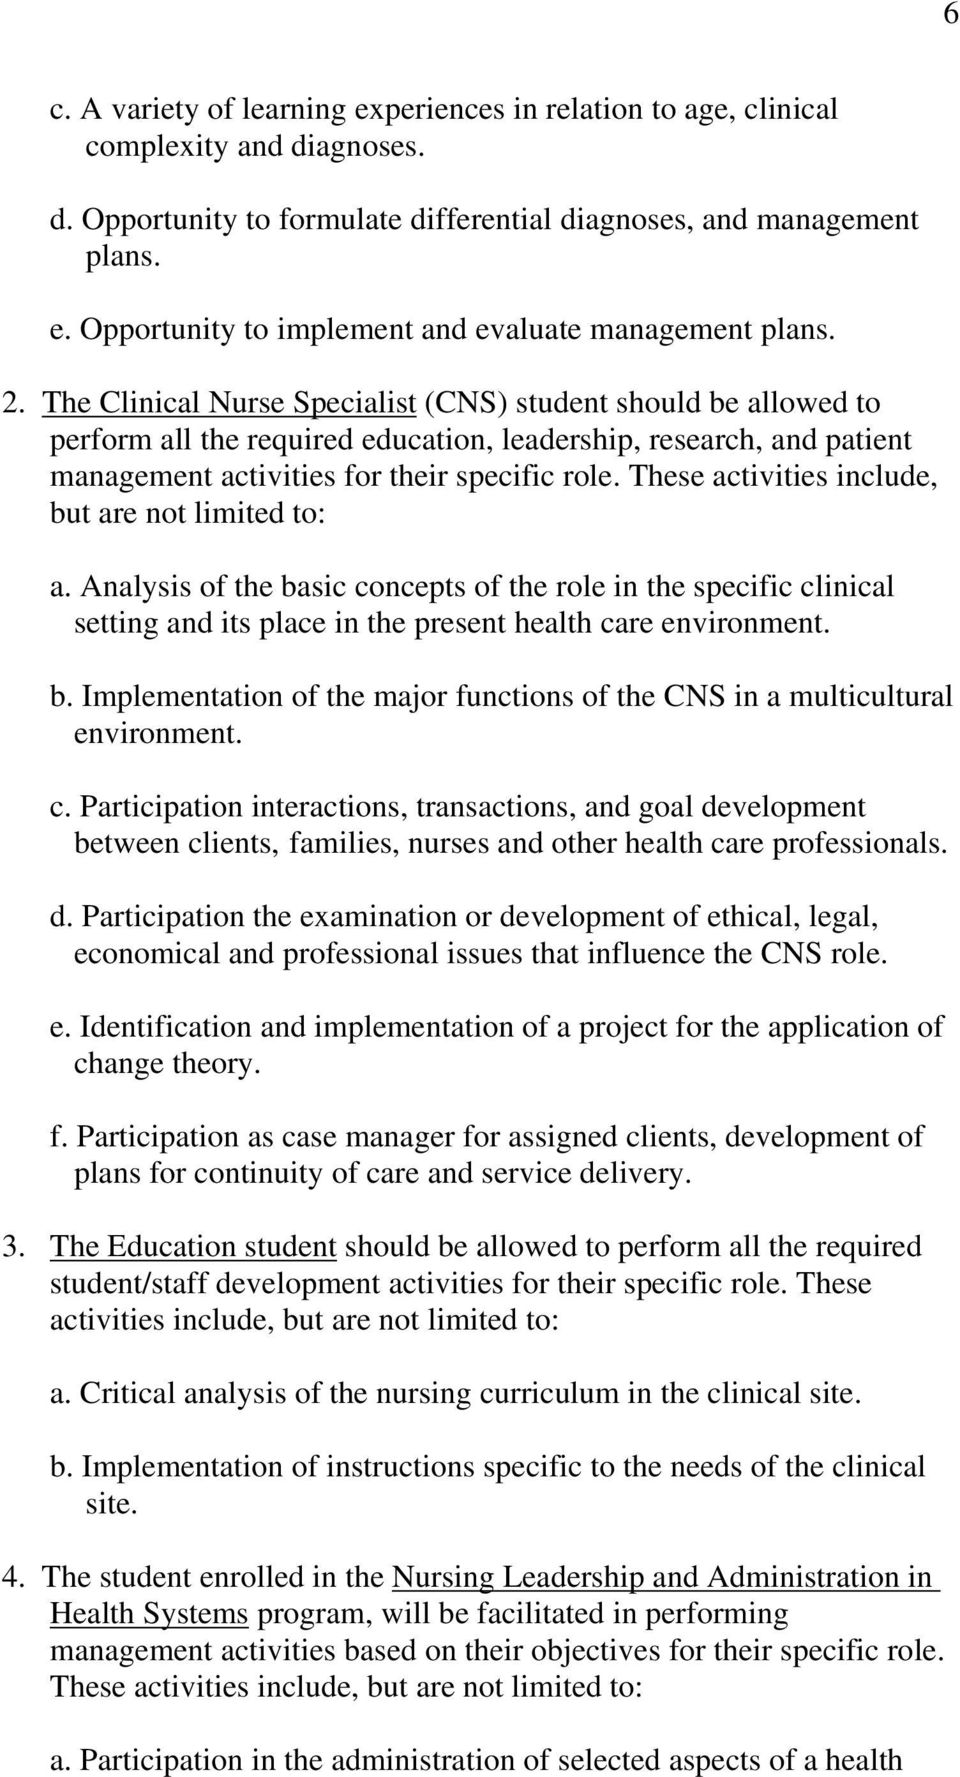 These activities include, but are not limited to: a. Analysis of the basic concepts of the role in the specific clinical setting and its place in the present health care environment. b. Implementation of the major functions of the CNS in a multicultural environment.